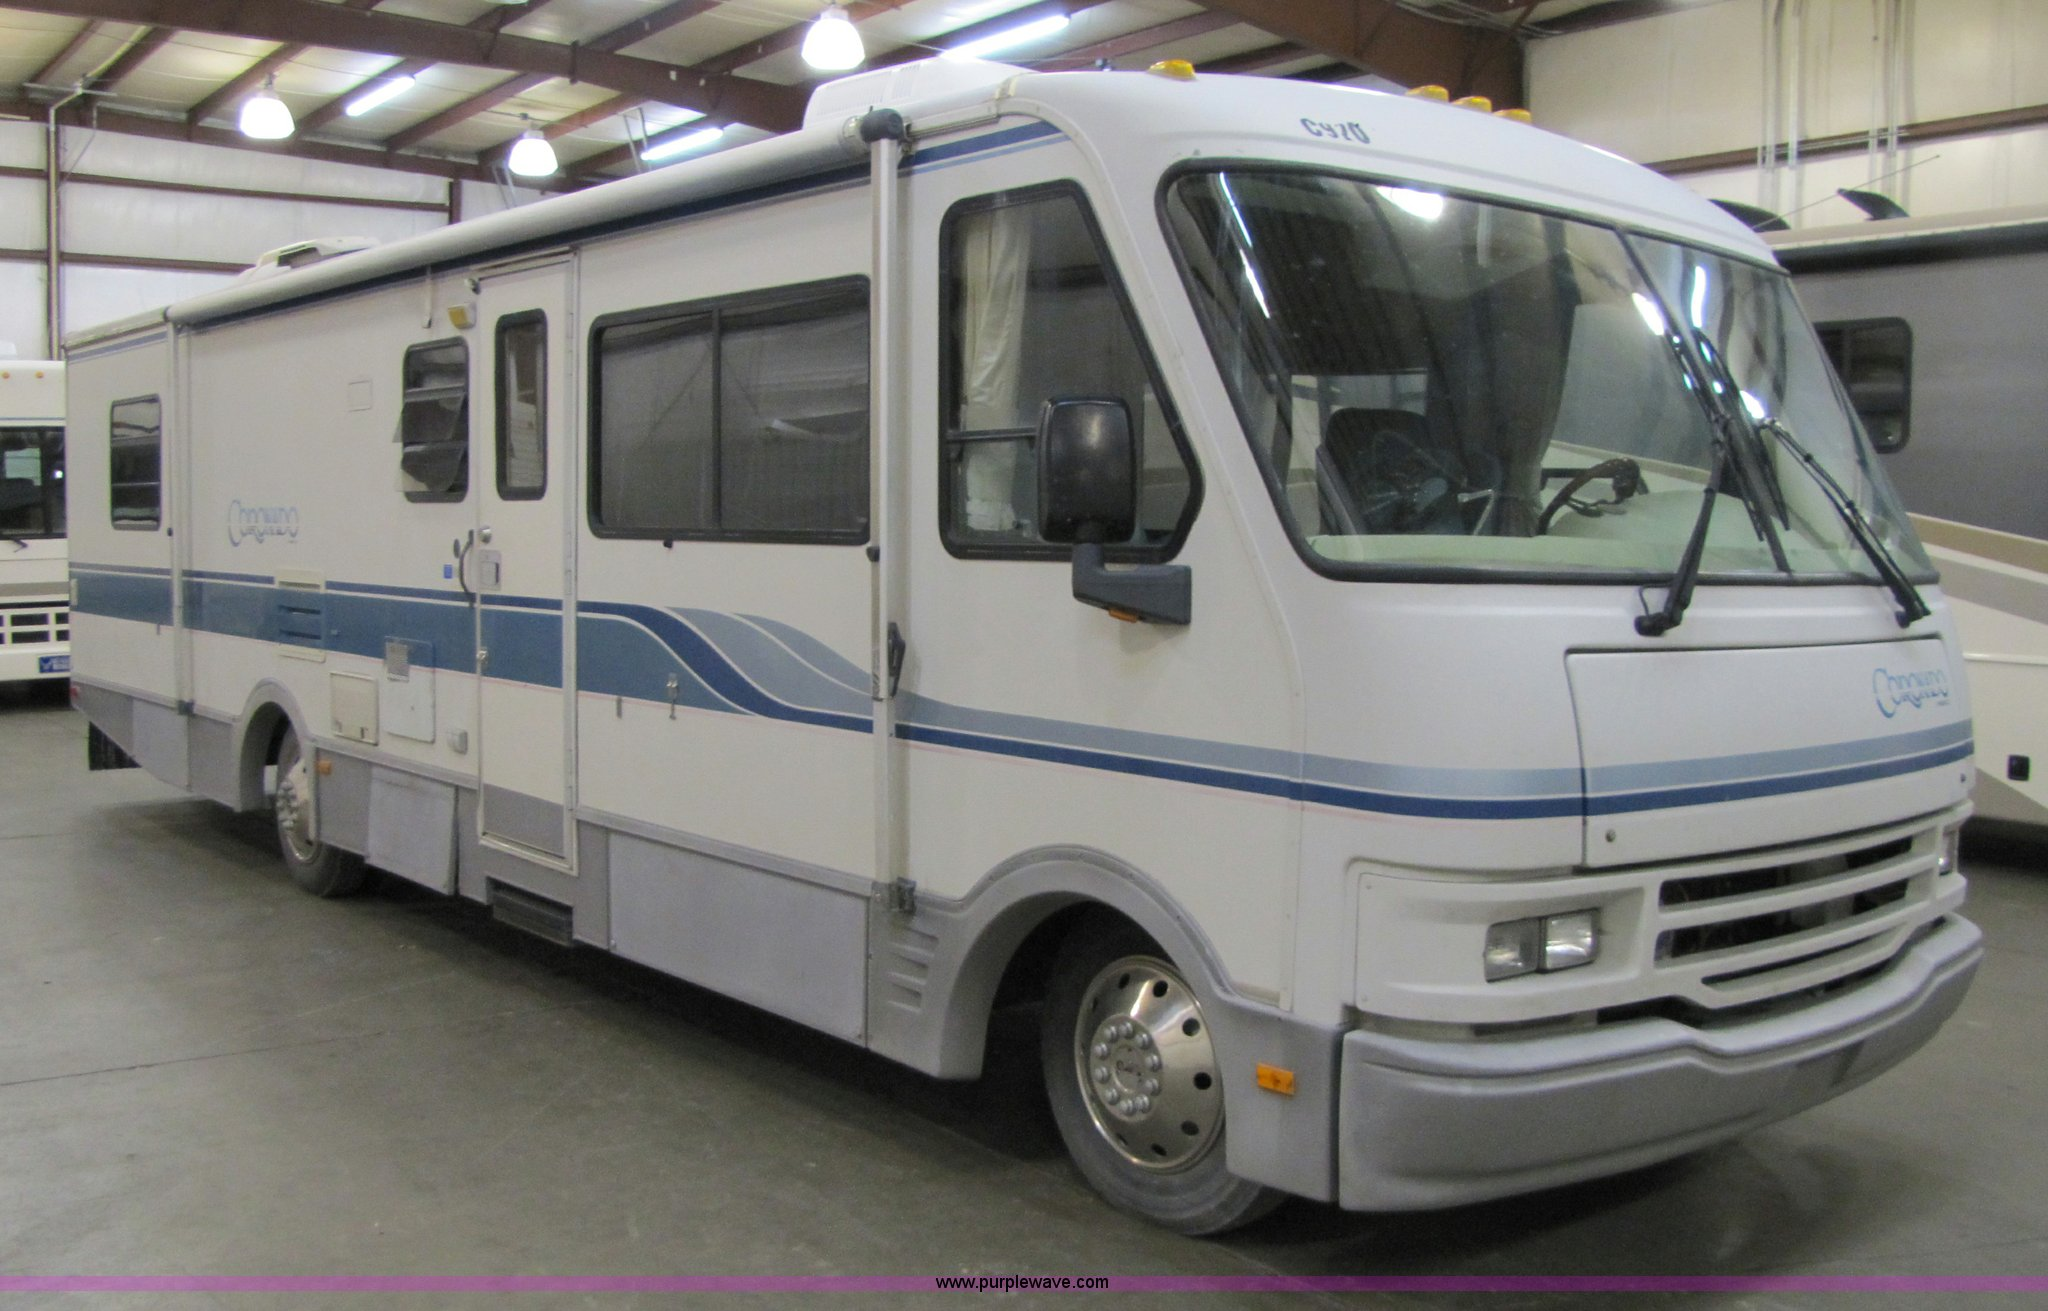 1992 Coronado Motorhome Wiring Diagram Trusted Commercial Motor Detailed Diagrams Chevrolet P30 Fleetwood Rv Home